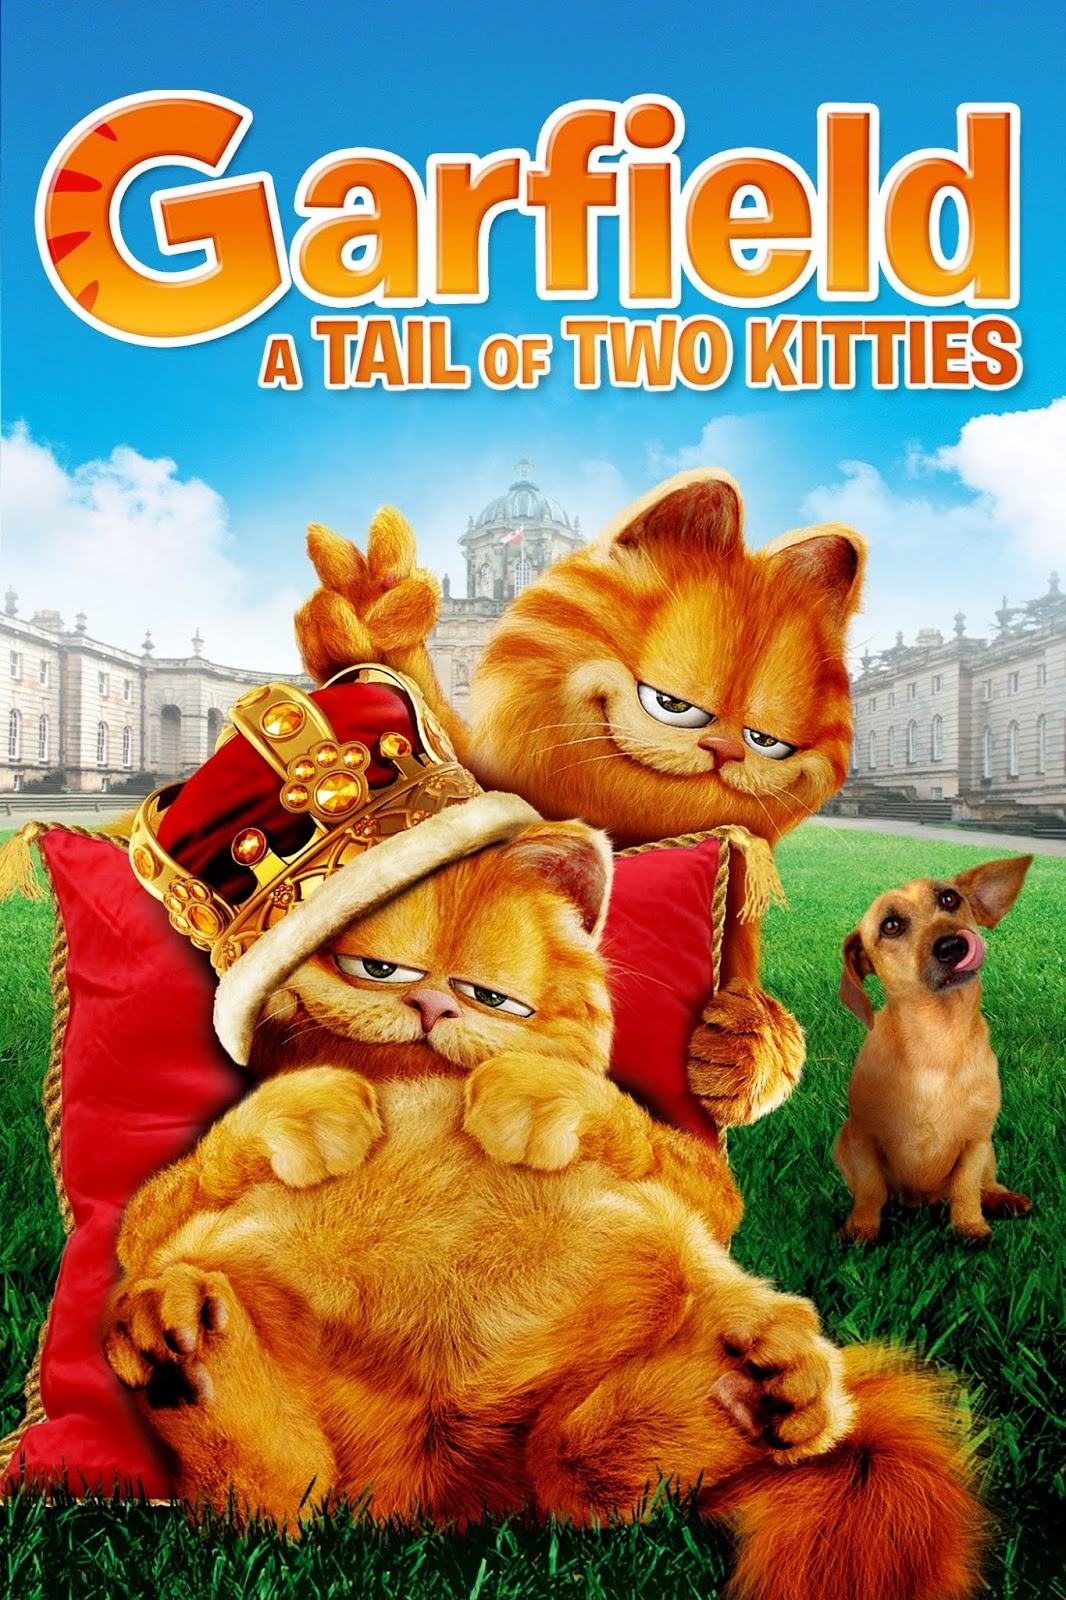 Tamizhbrosmovies Com Garfield A Tail Of Two Kitties 2006 720p Blu Ray Tamildubbed Full Movie